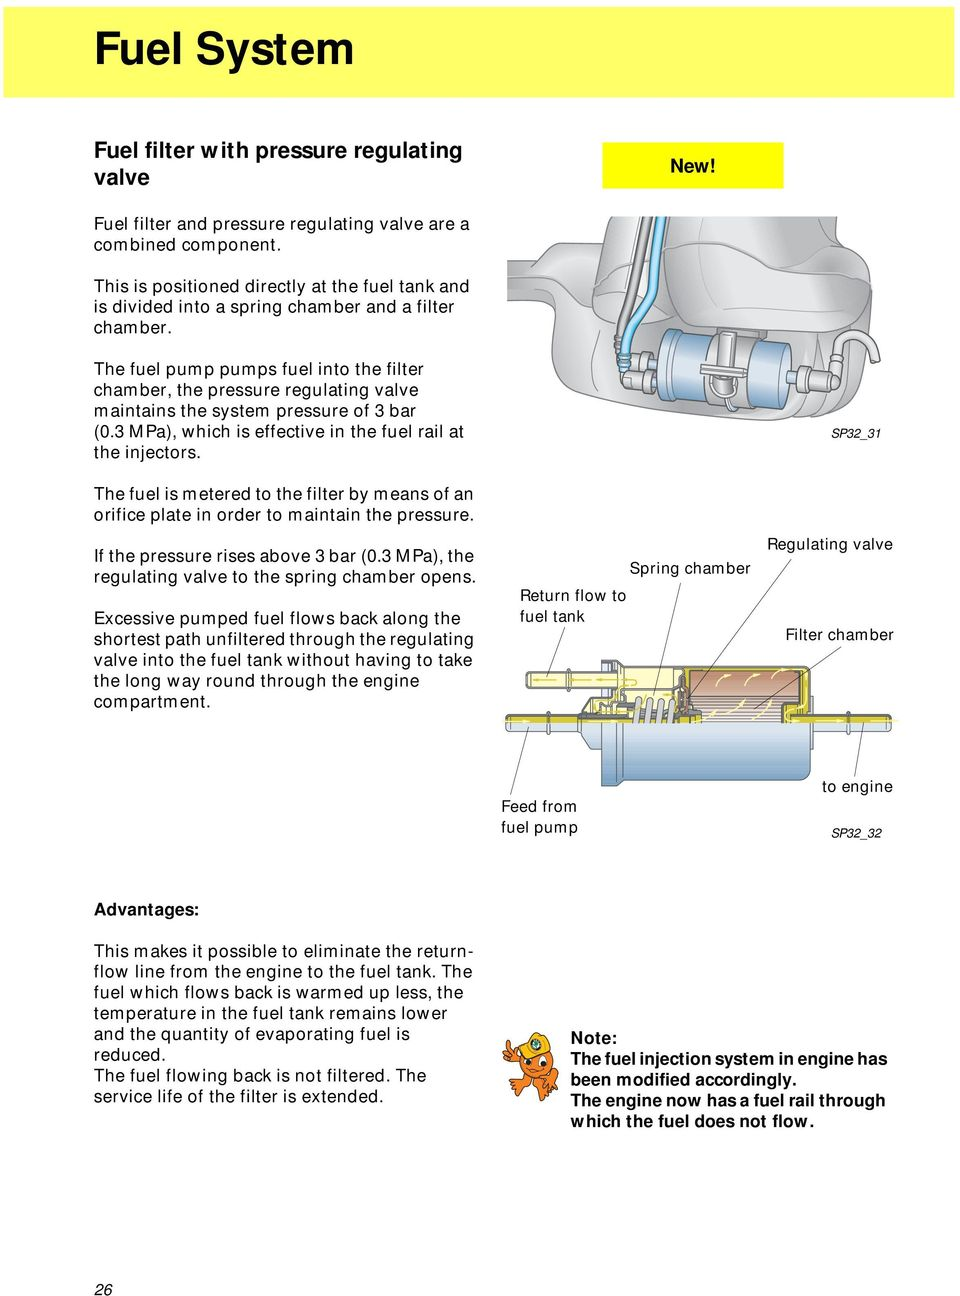 engine gearbox combinations pdf the fuel pump pumps fuel into the filter chamber the pressure regulating valve maintains the